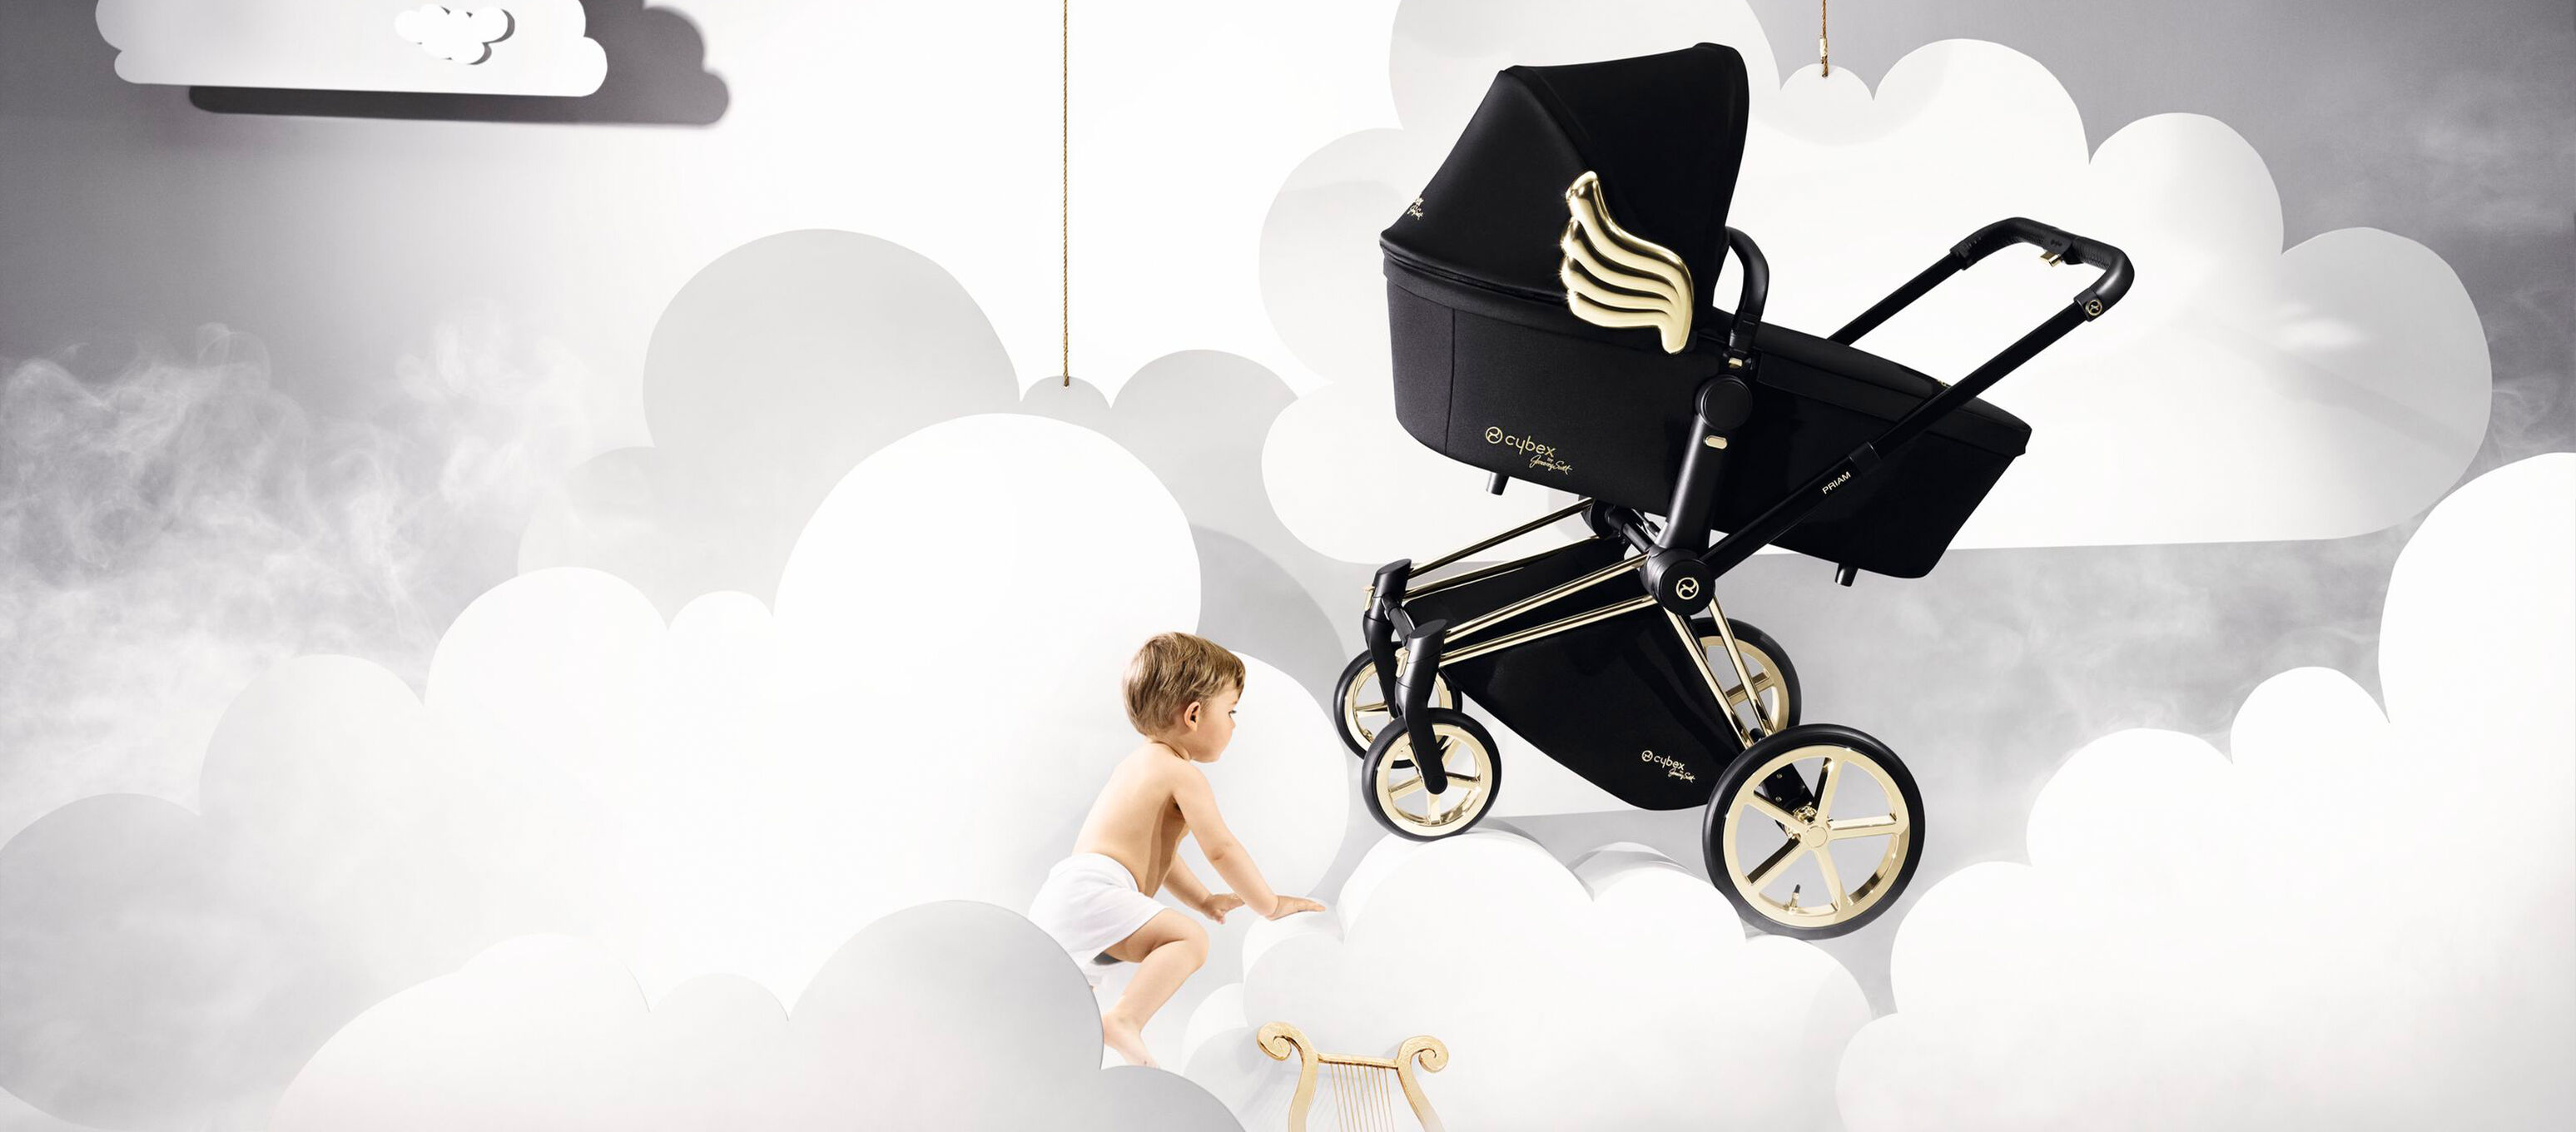 Cybex by Jeremy Scott Wings Kollektion Kinderwagen und Baby Bild